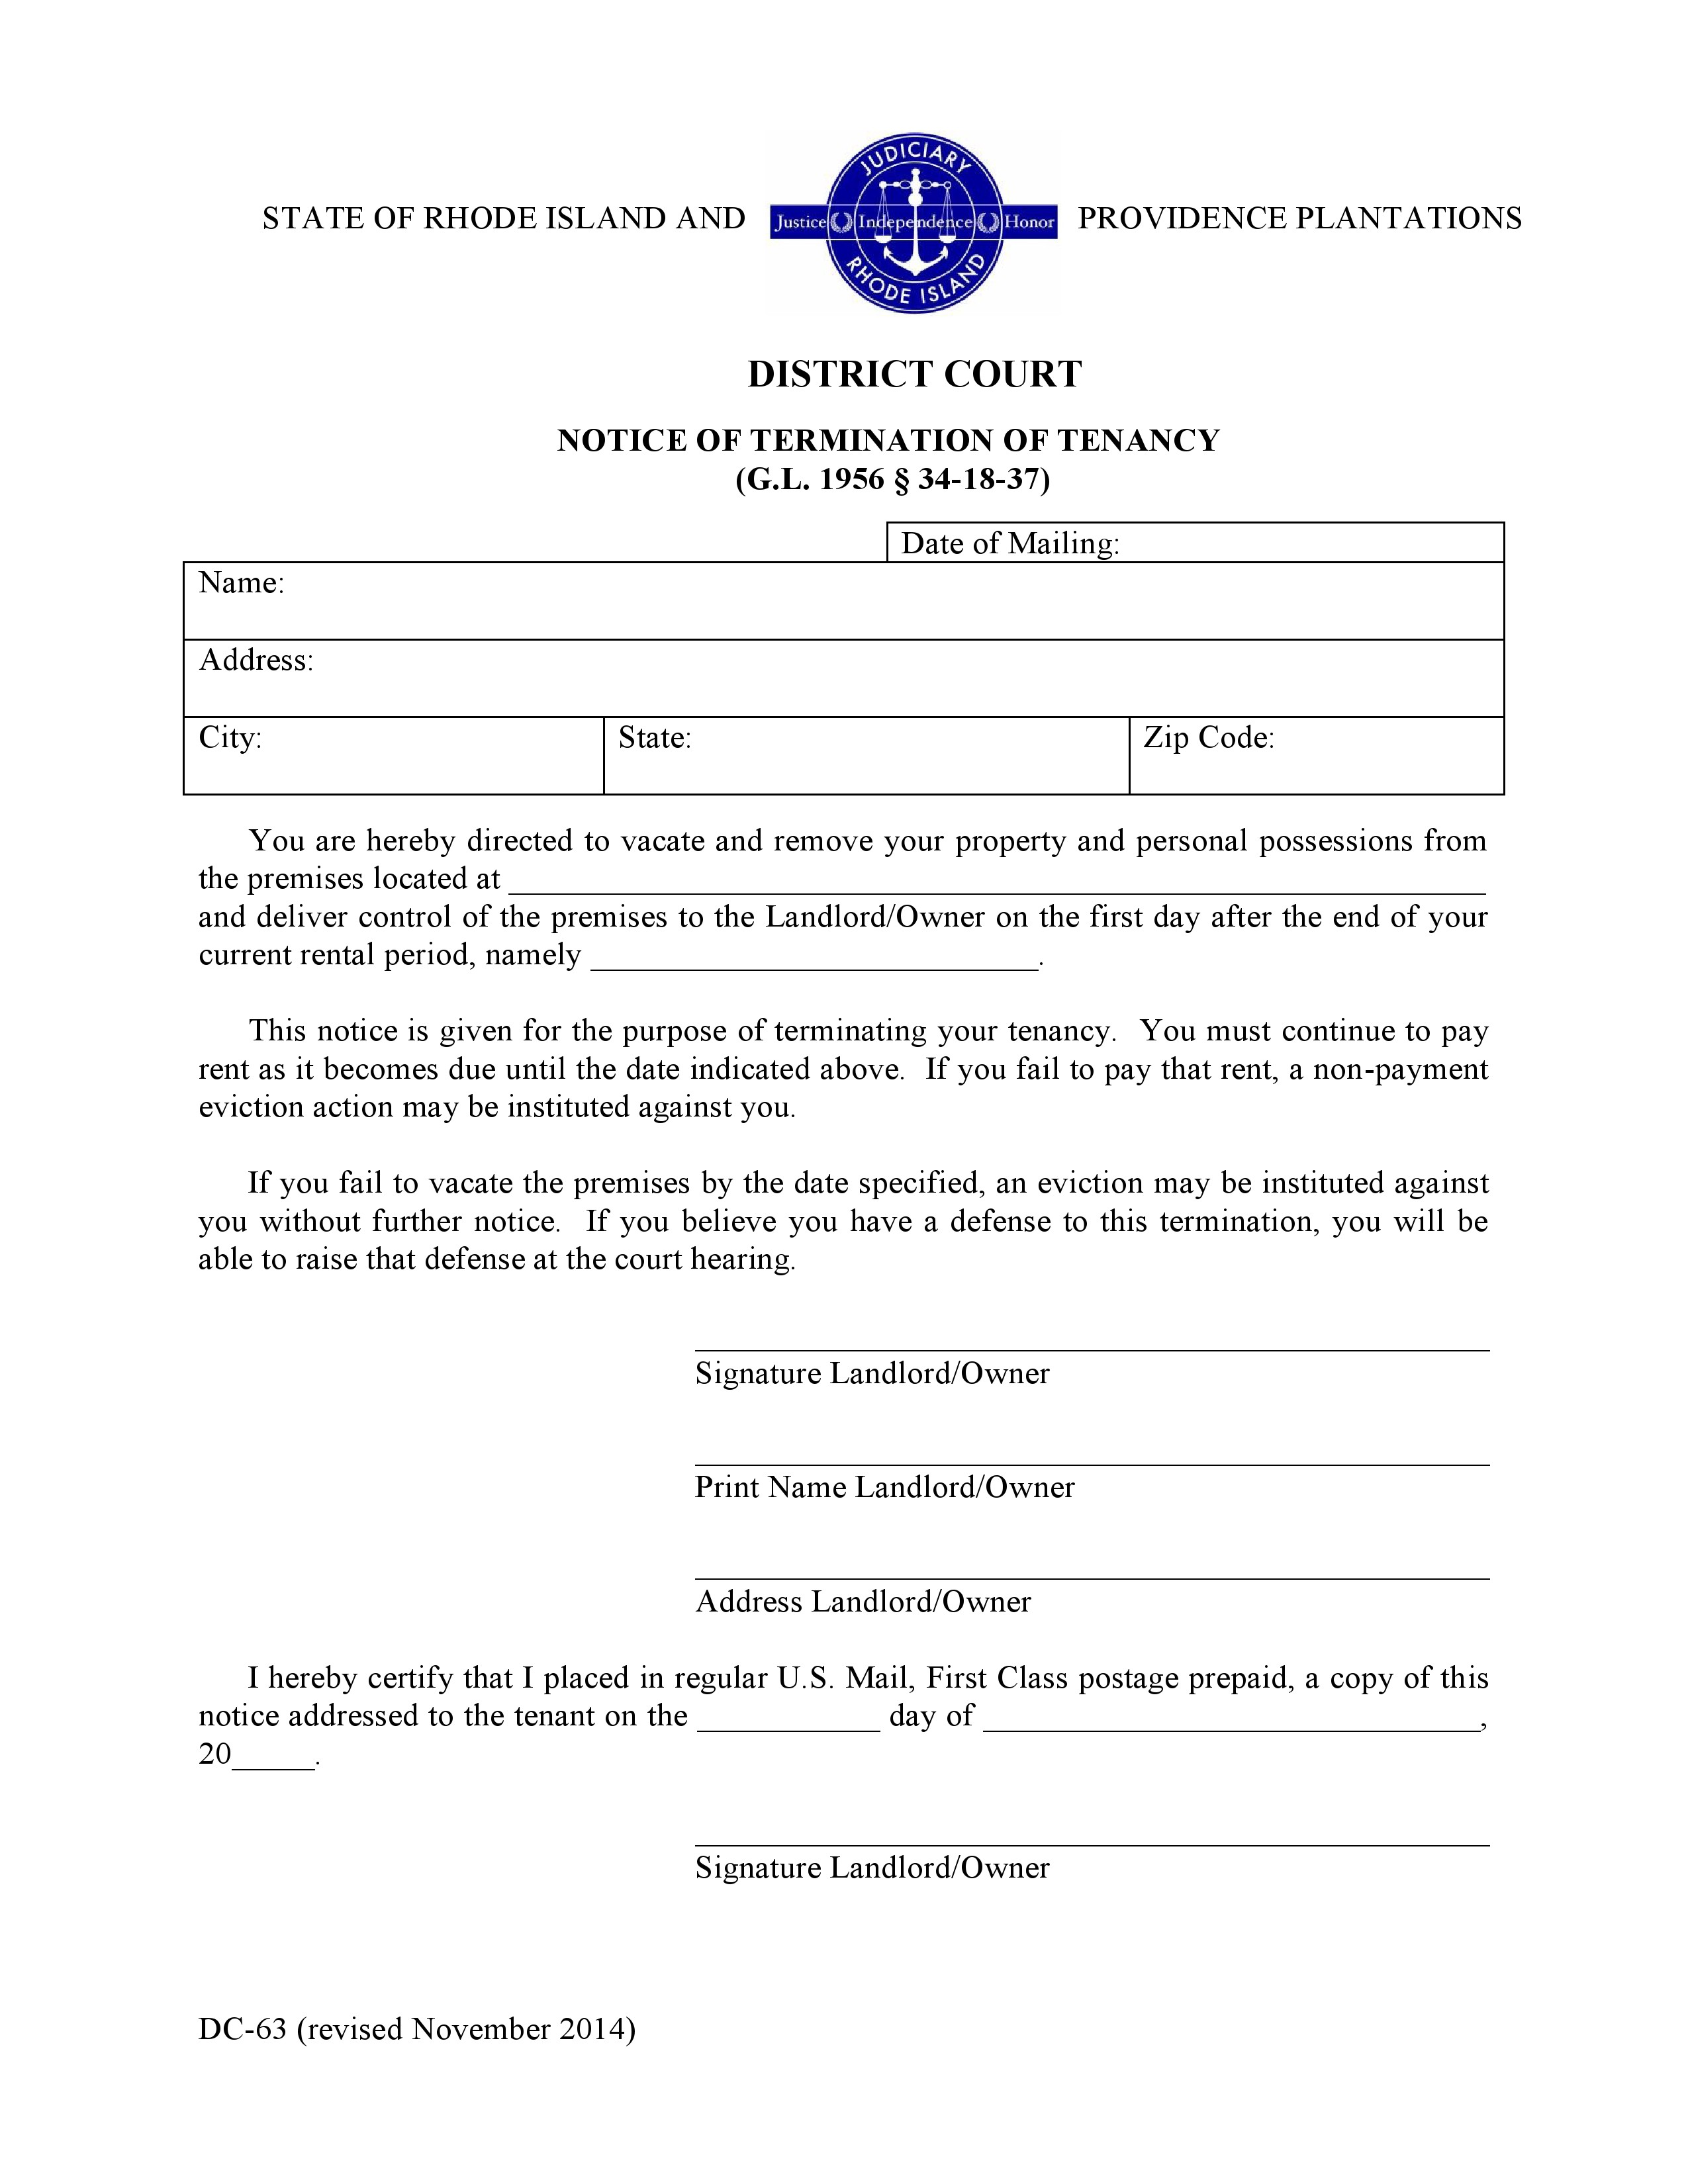 Free Rhode Island Notice Of Termination Of Tenancy PDF Word Do It Yourself Forms